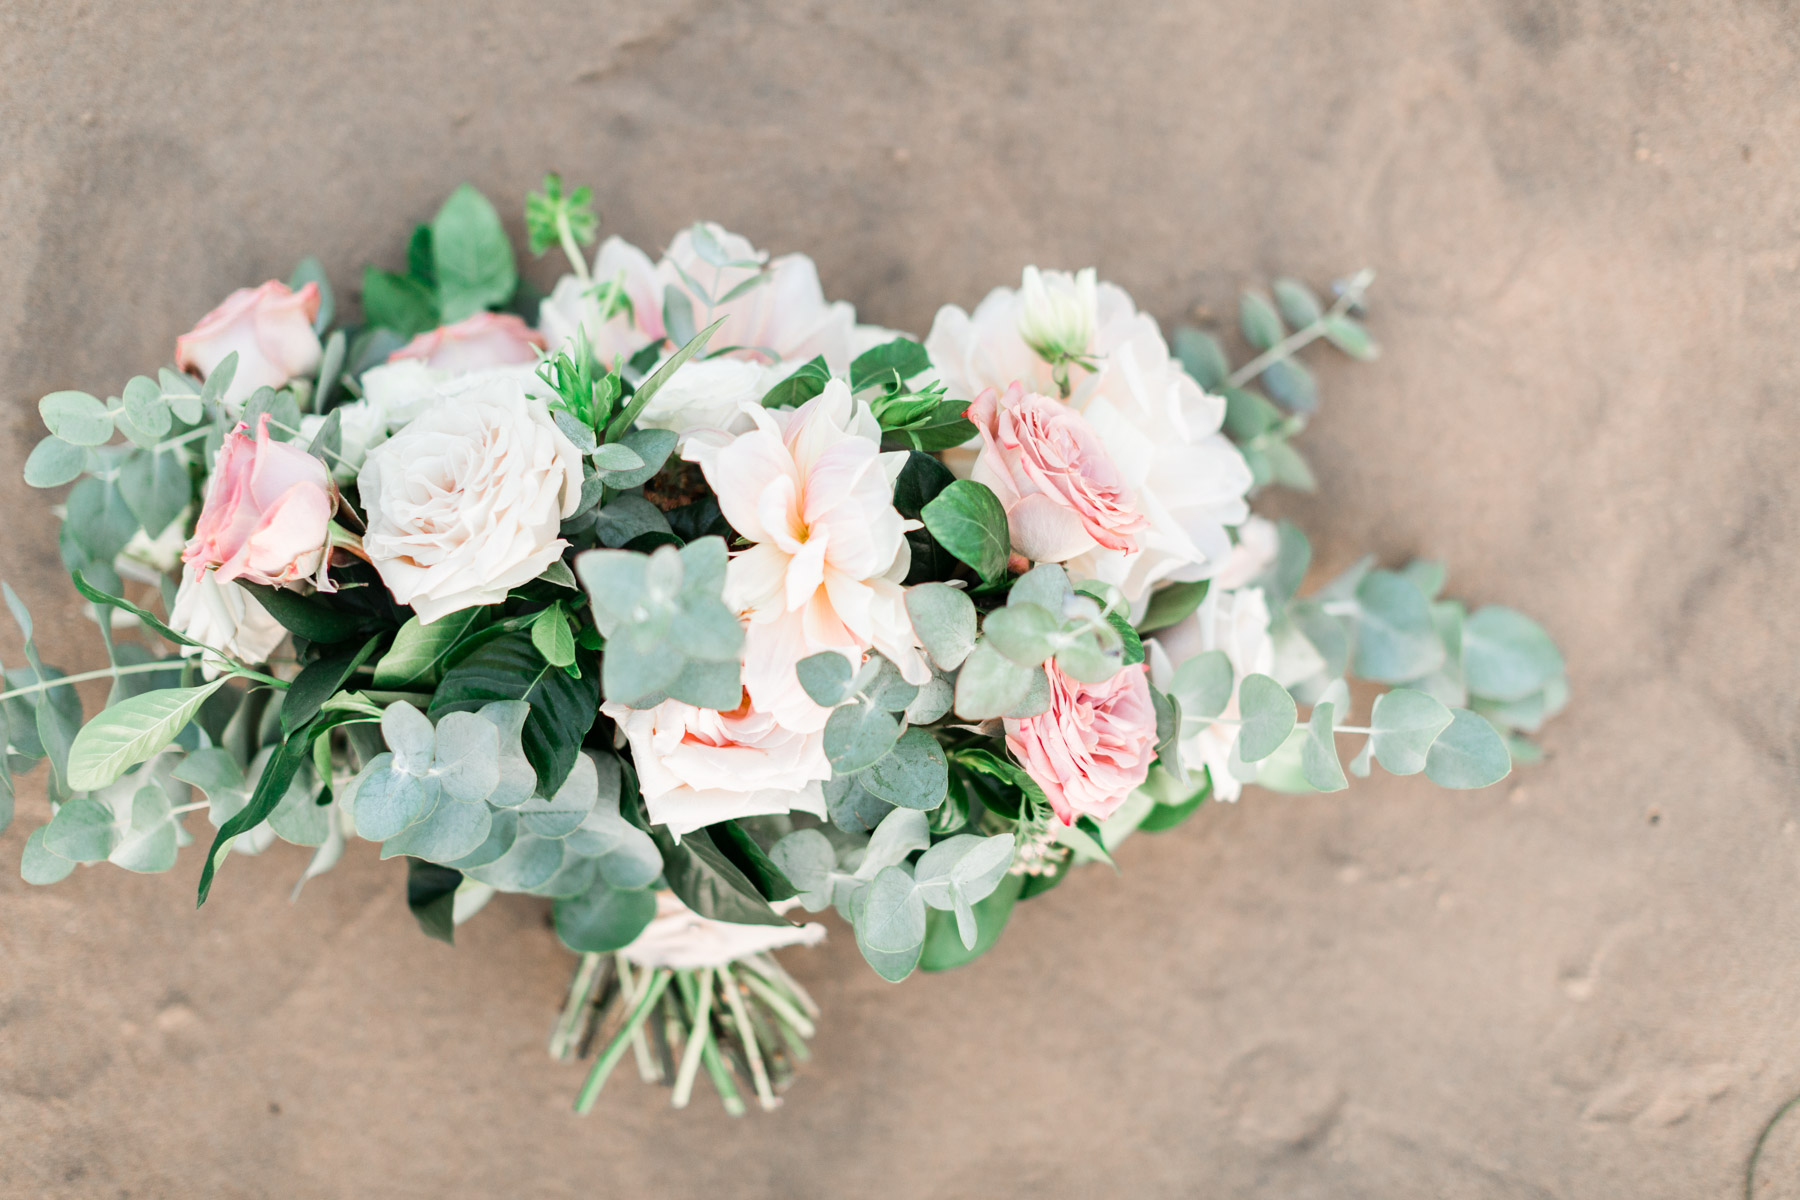 Blush and white flowers in an elegant, romantic beach bridal bouquet | Newport Beach, CA | Compass Floral | Wedding Florist in San Diego and Southern California | Cavin Elizabeth Photography